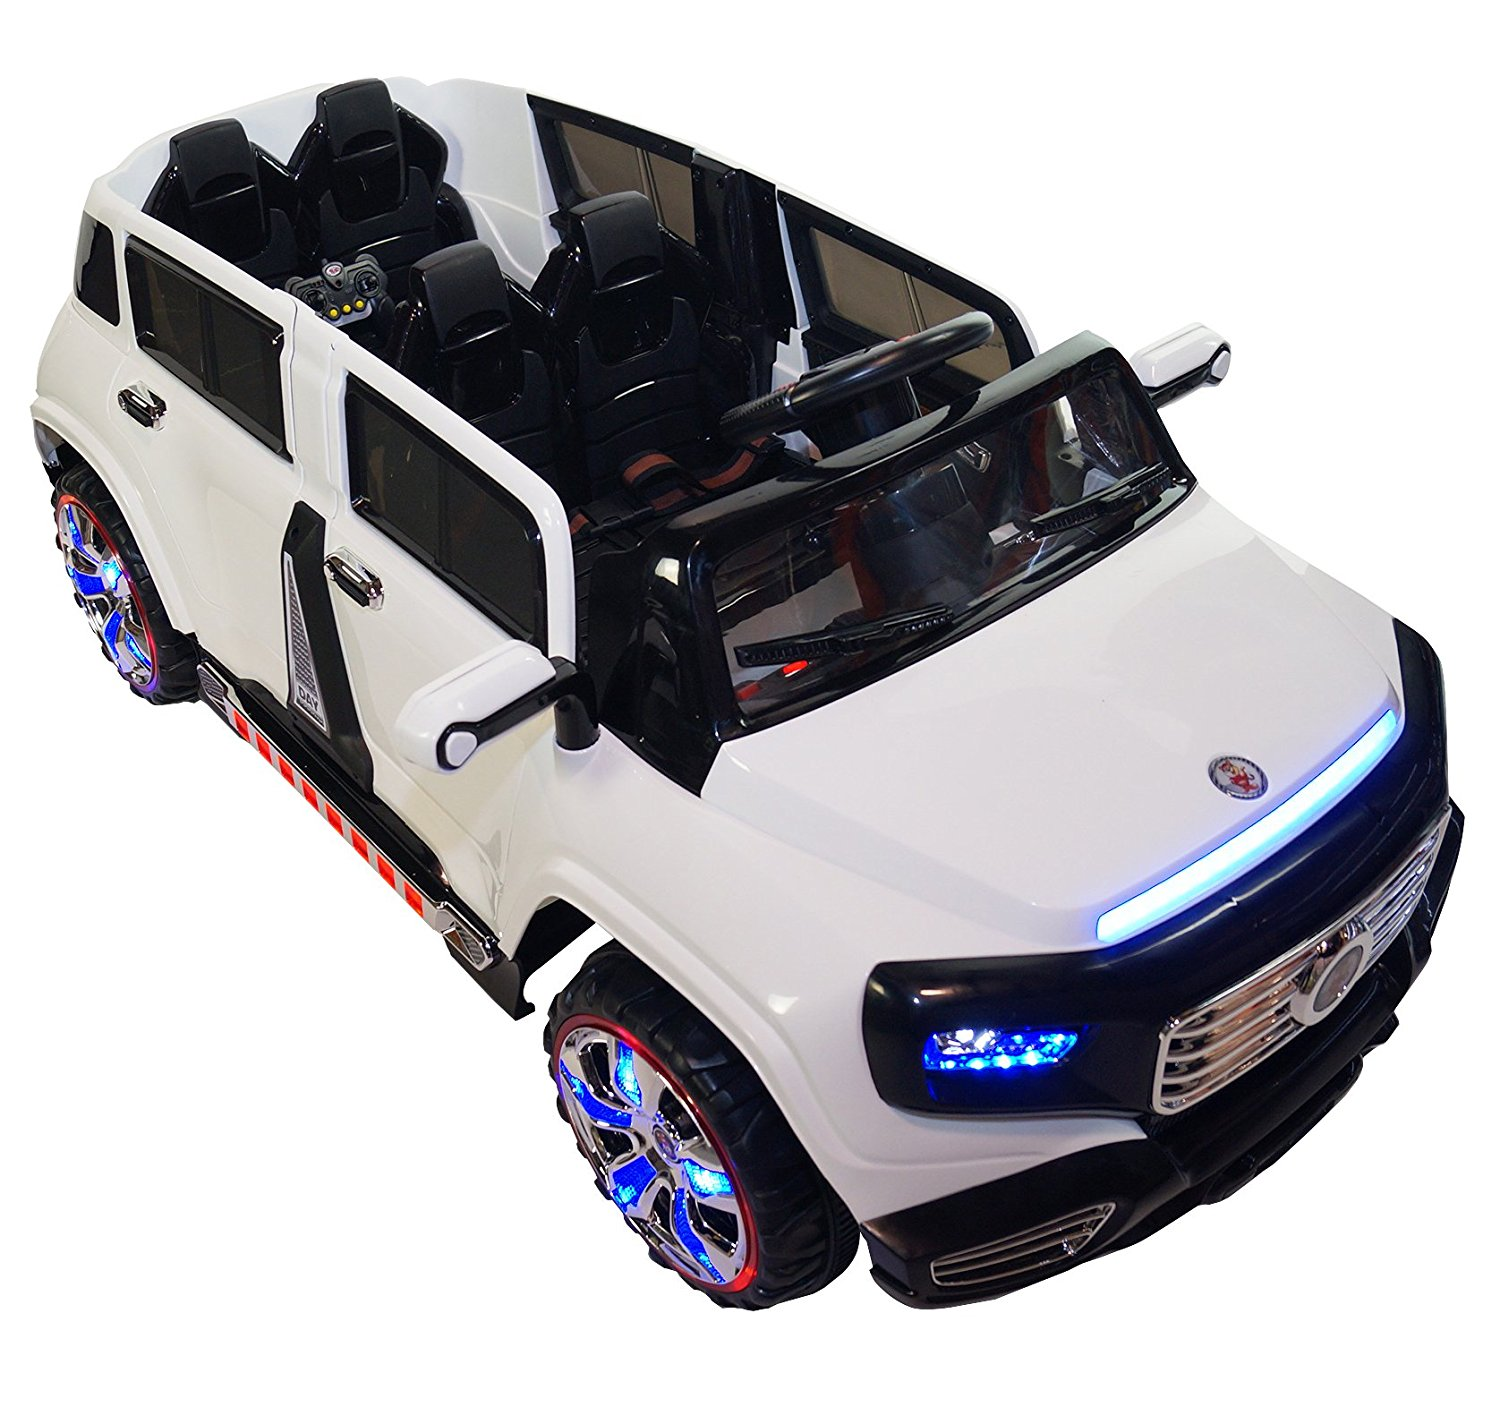 Two Seater Ride On 12v Battery Powered Toy Car with Remote ...